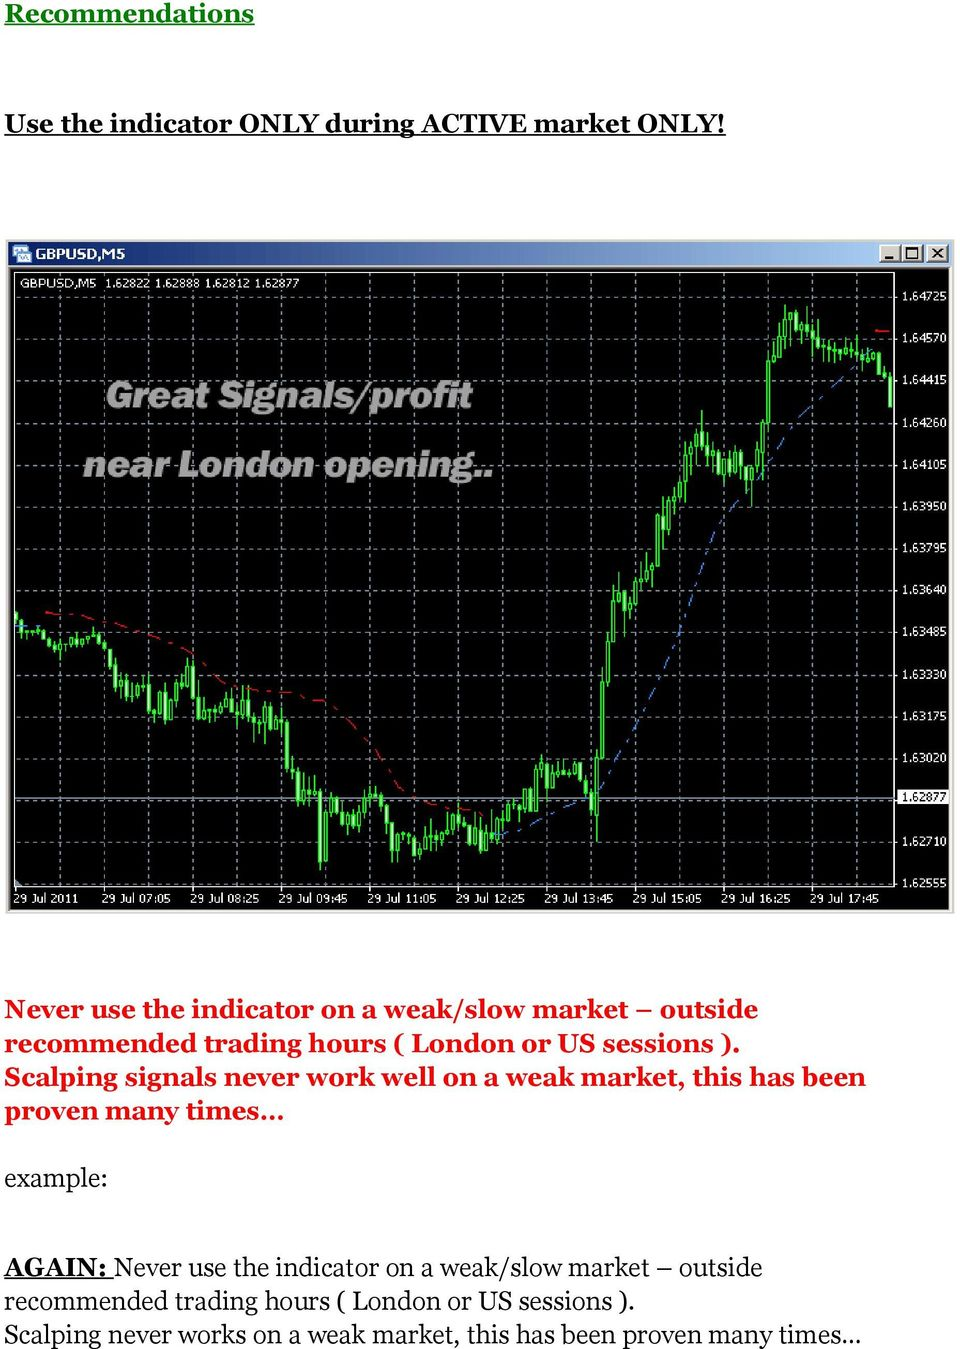 Scalping signals never work well on a weak market, this has been proven many times example: AGAIN:  Scalping